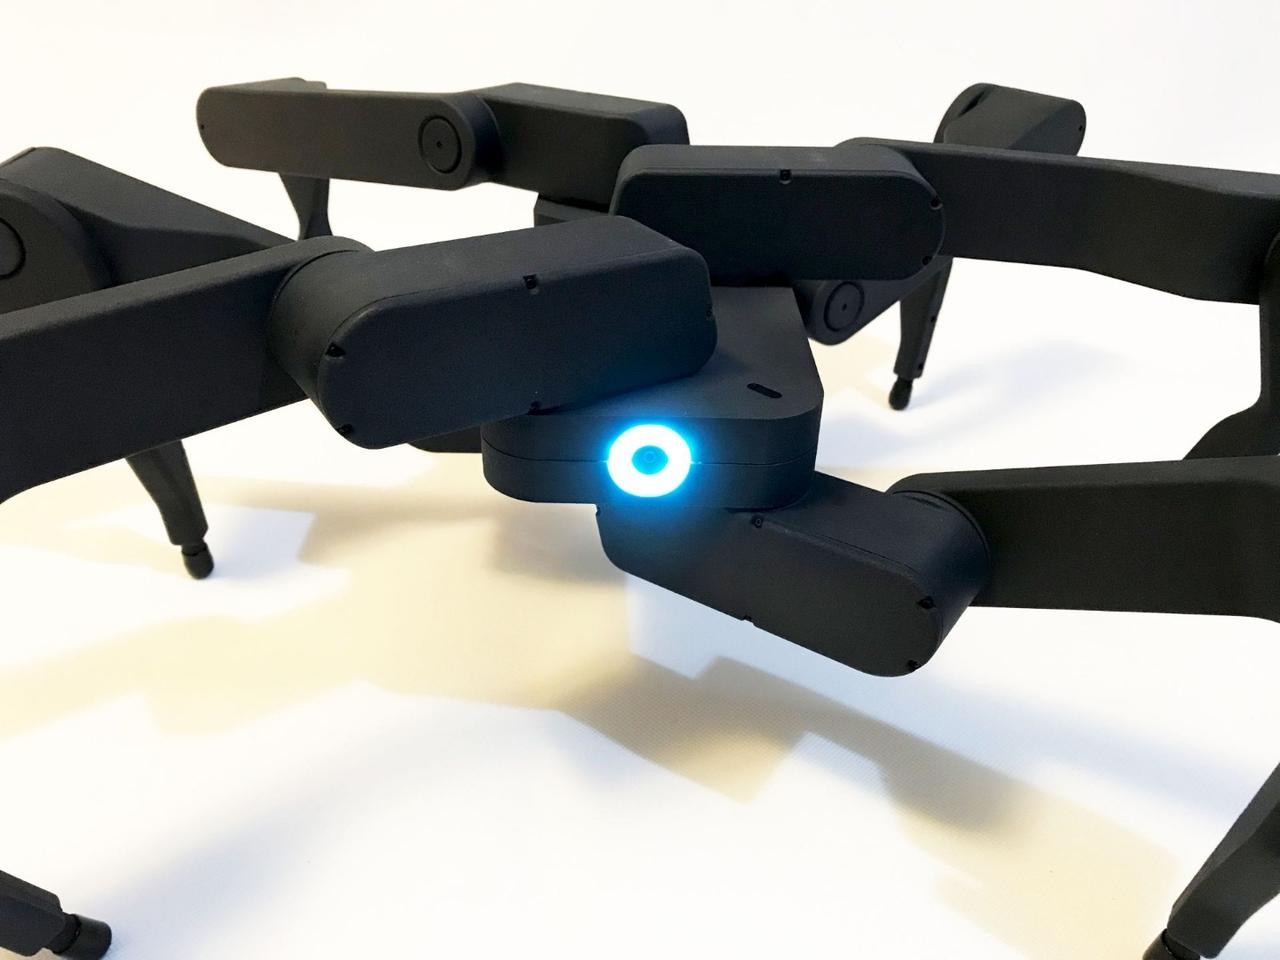 The Z6 robot's six legs are attached to a central rectangular body